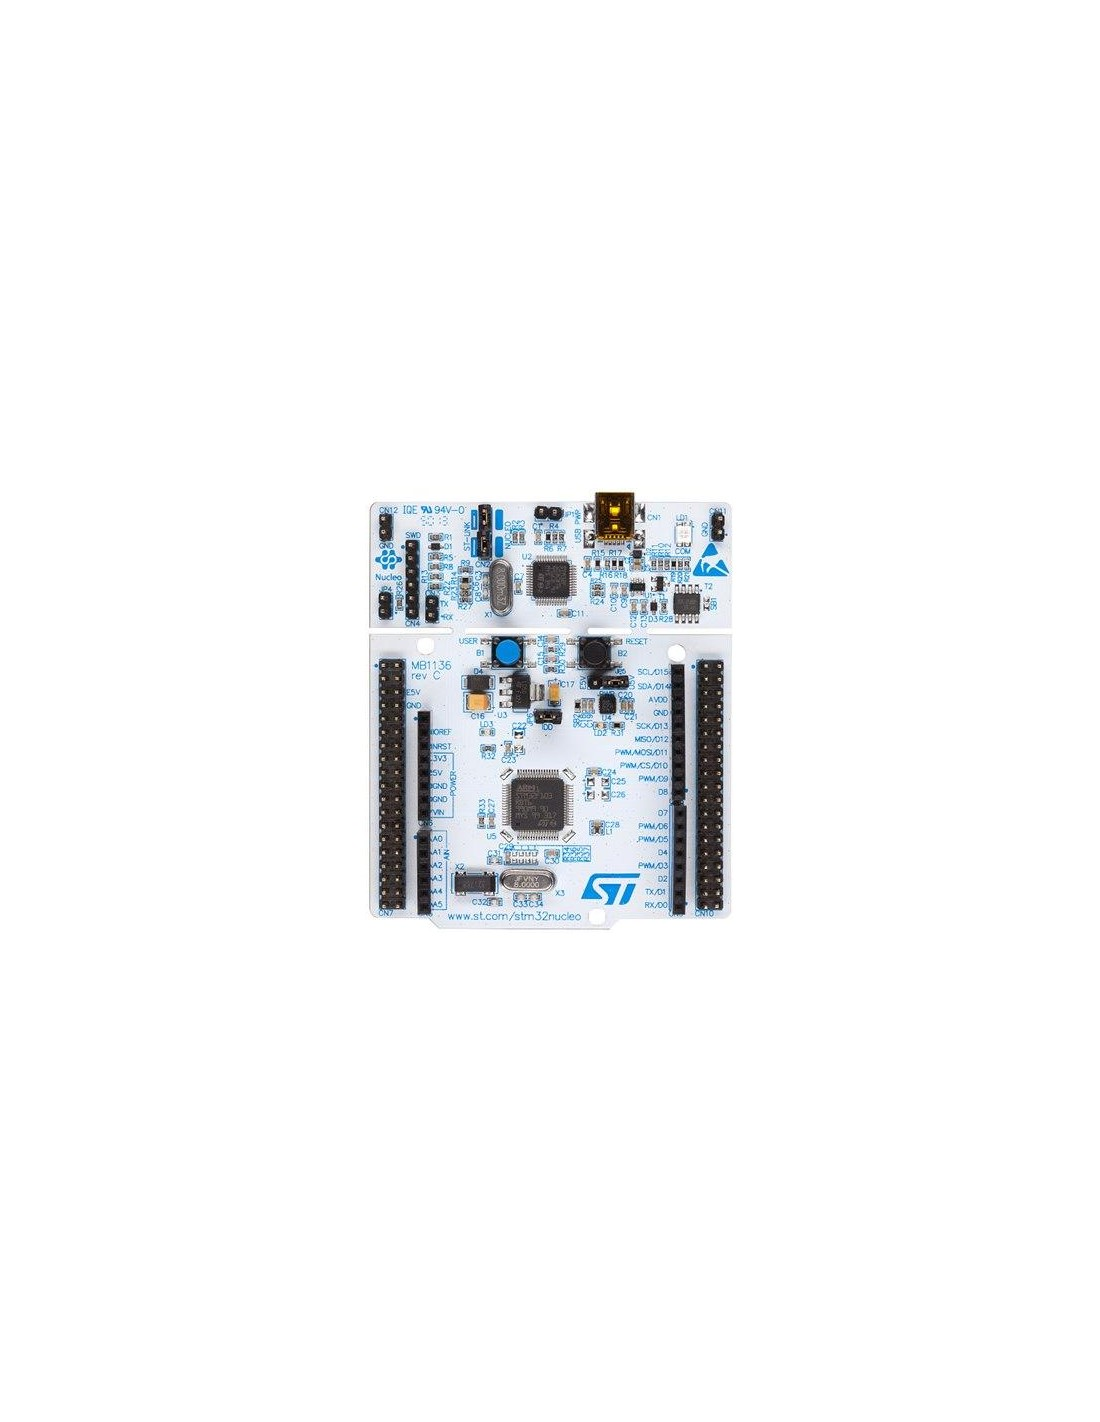 NUCLEO-F103RB (STM32 Nucleo development board for STM32 F1 series - with  STM32F103RBT6 MCU, Arduino-compatible pinout)